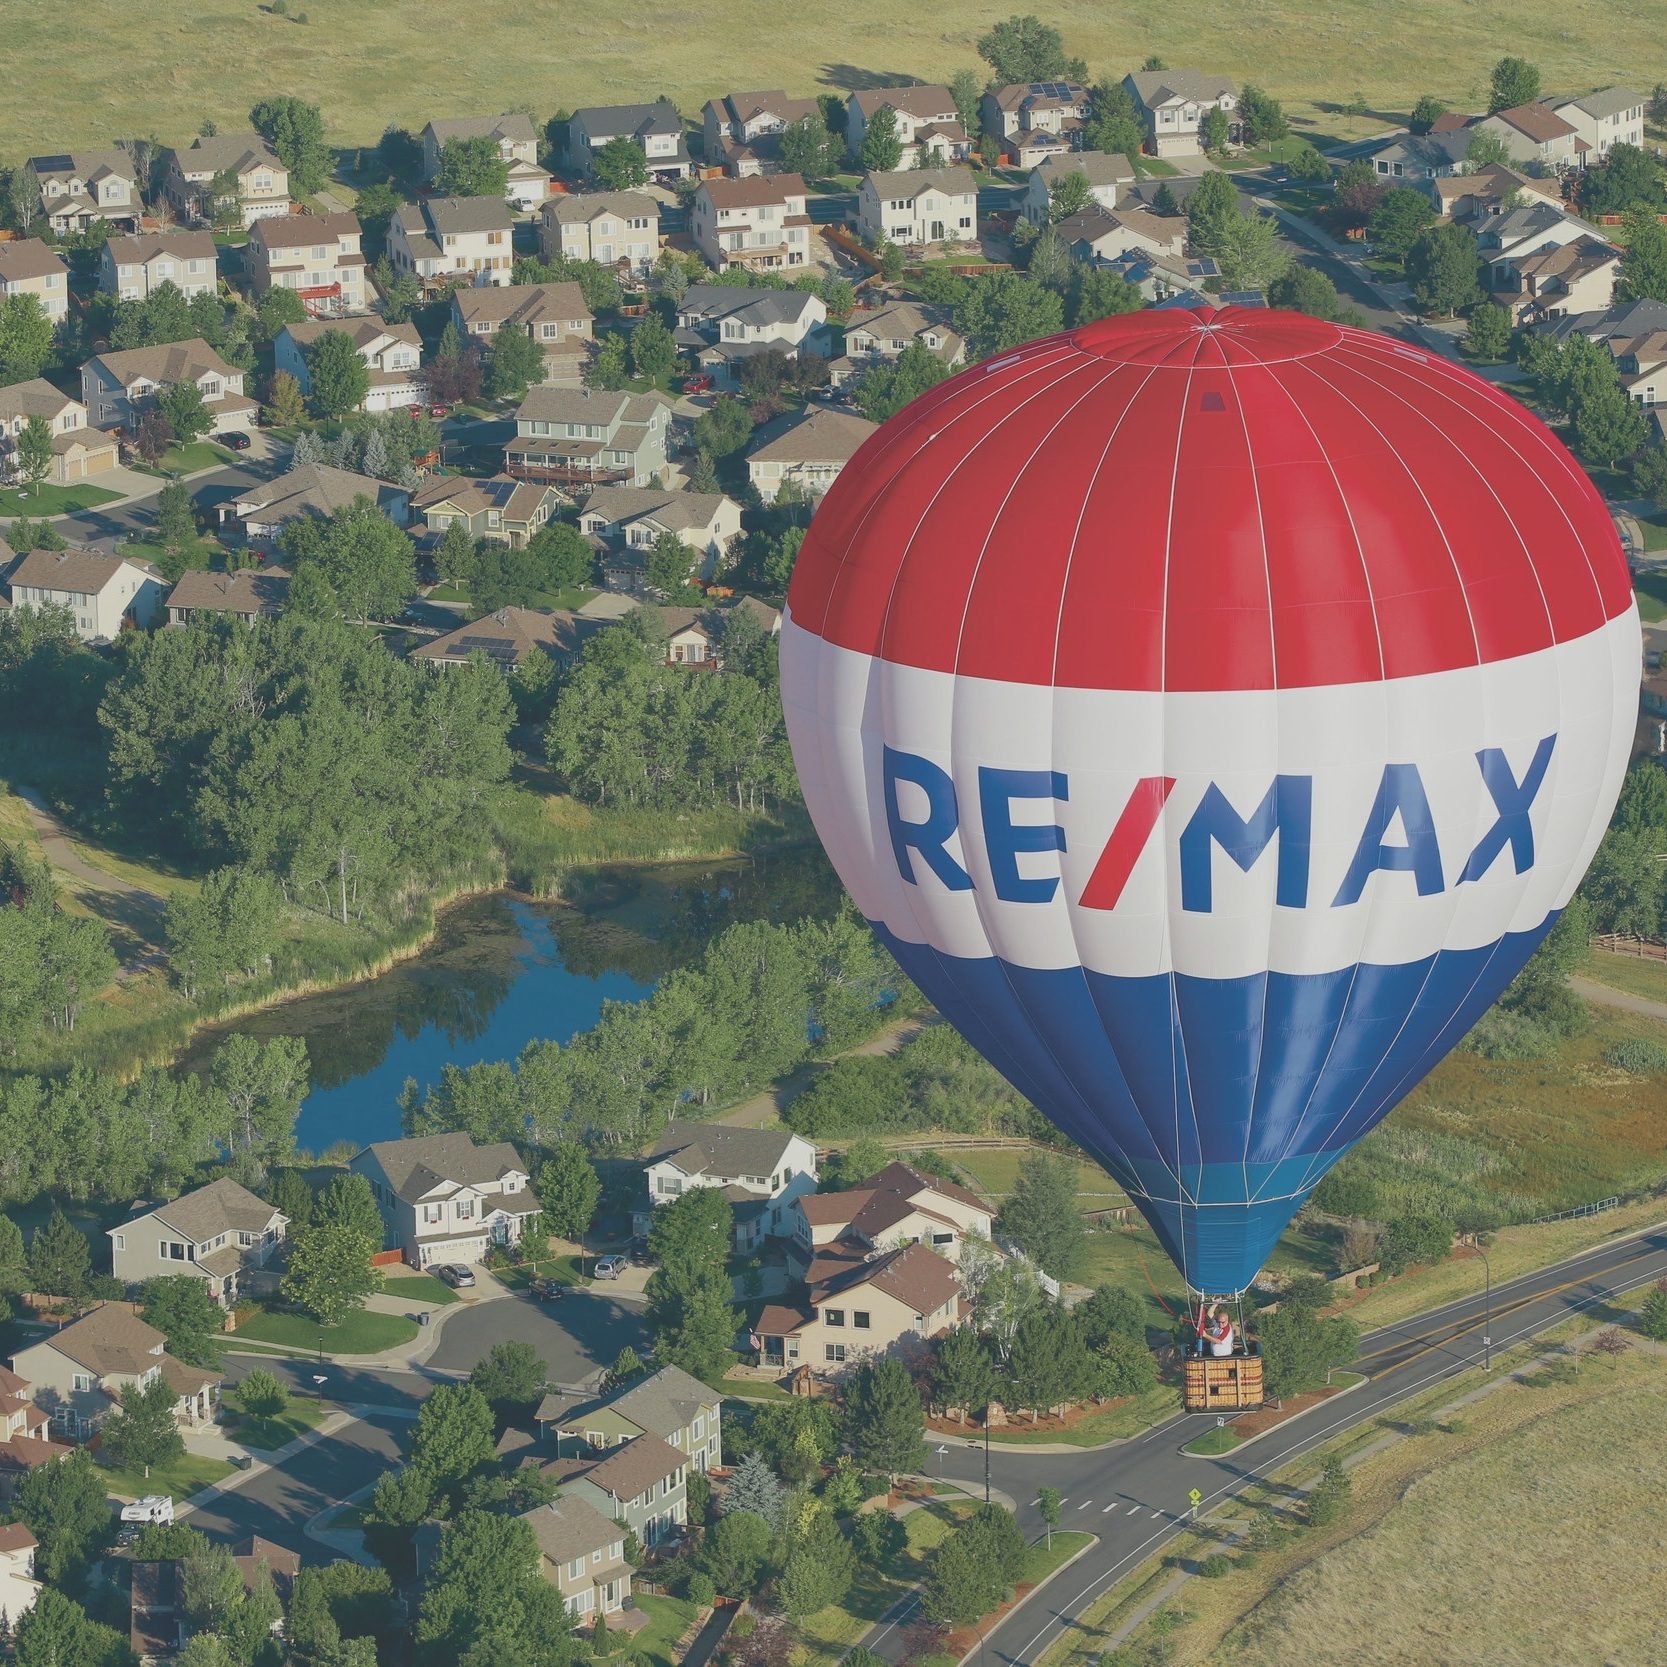 Why RE/MAX? -